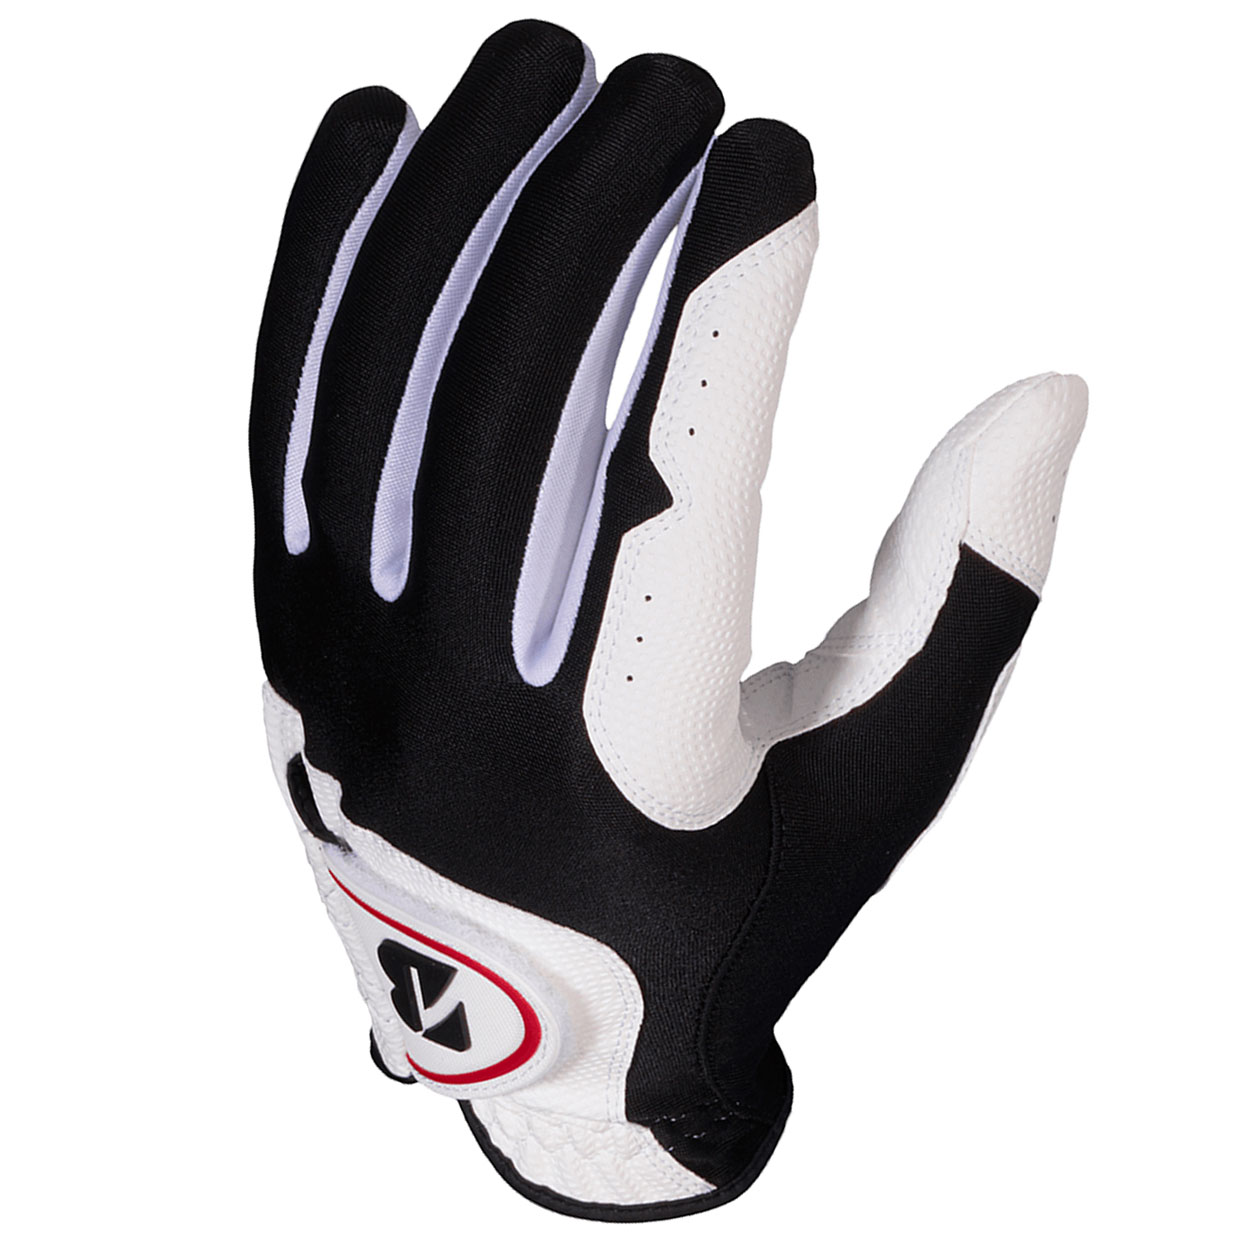 Bridgestone White Ez Fit Golf Gloves (3-Pack)